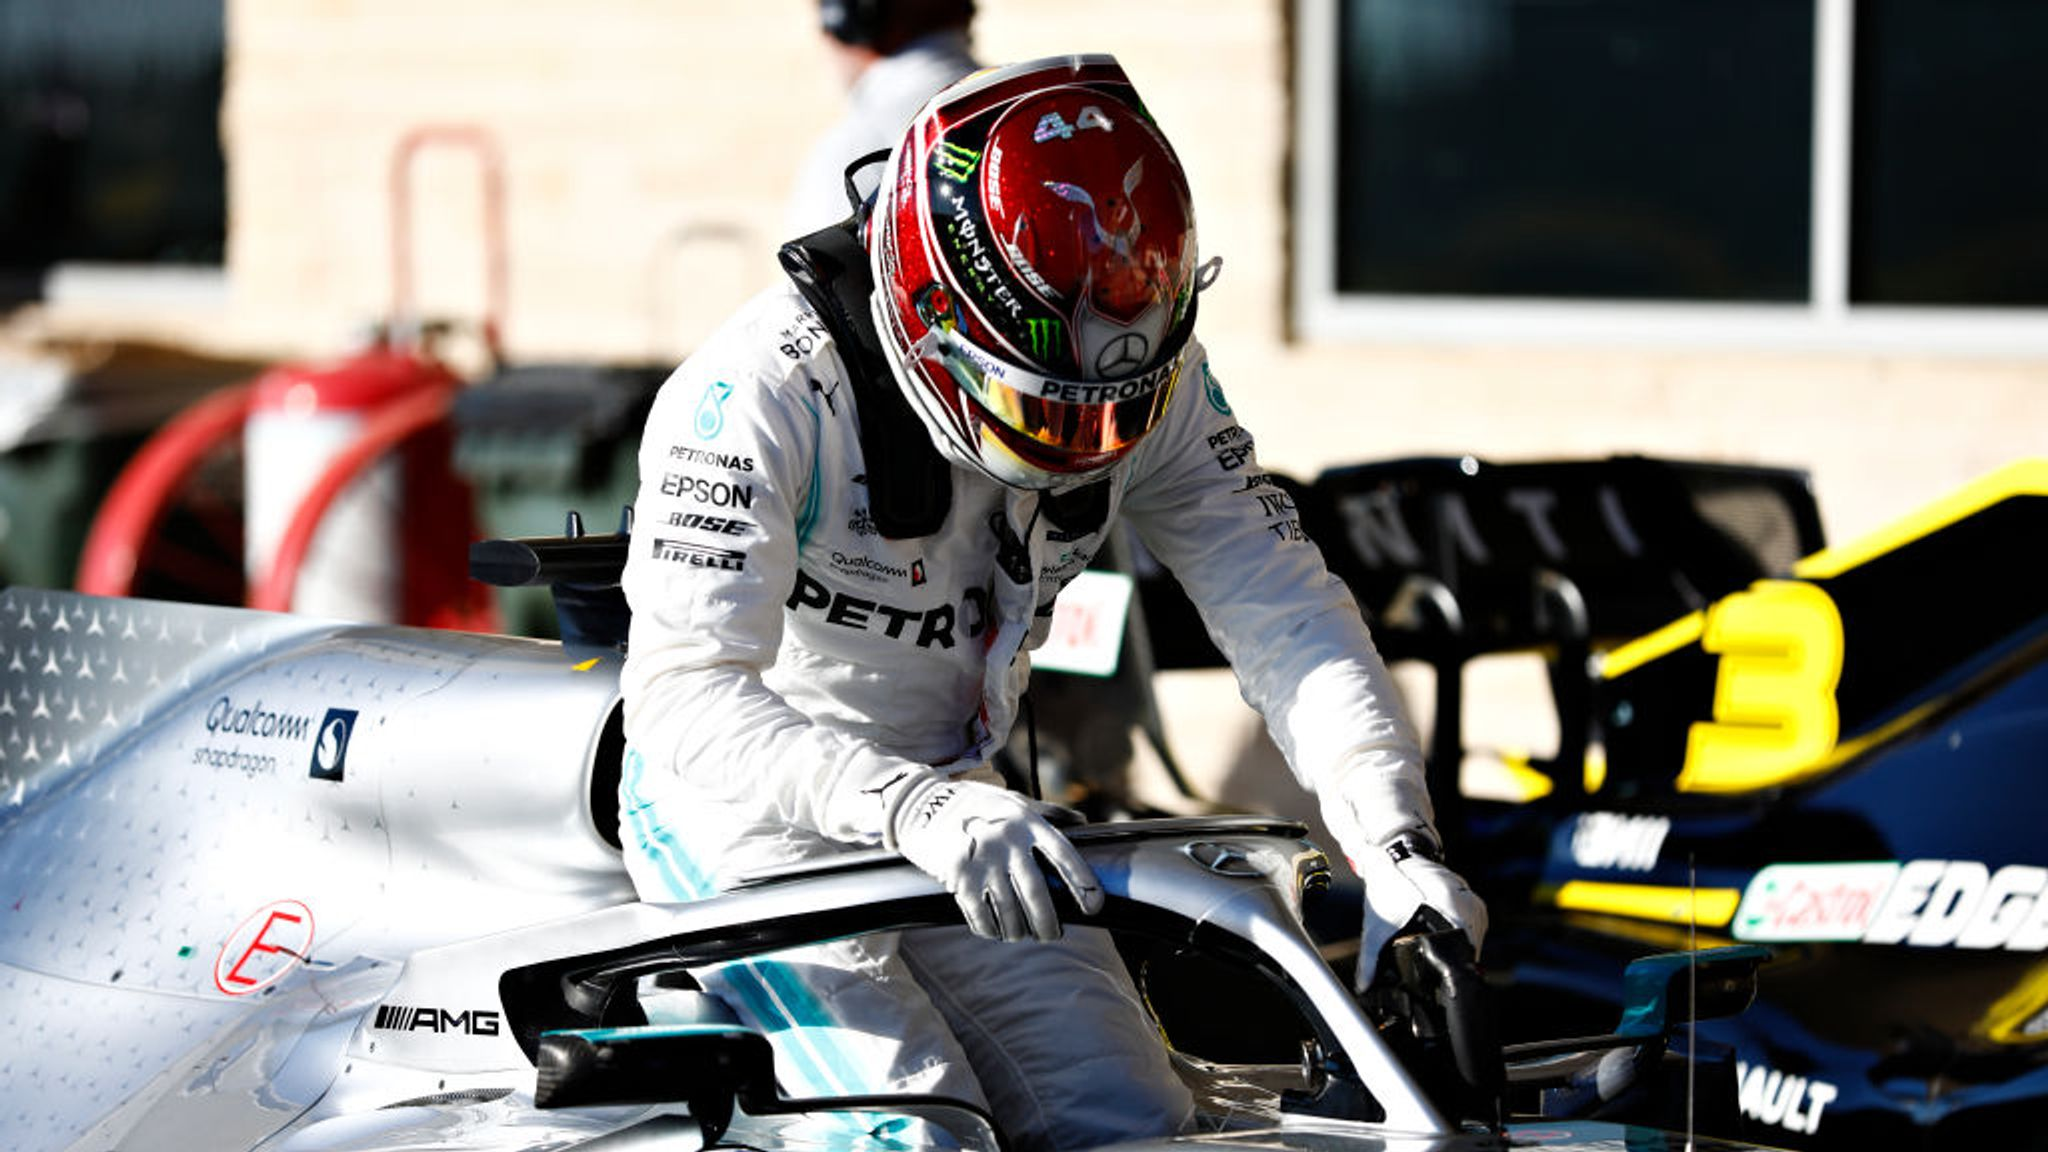 Lewis Hamilton at 'fault' in US GP qualifying and now in 'danger zone'